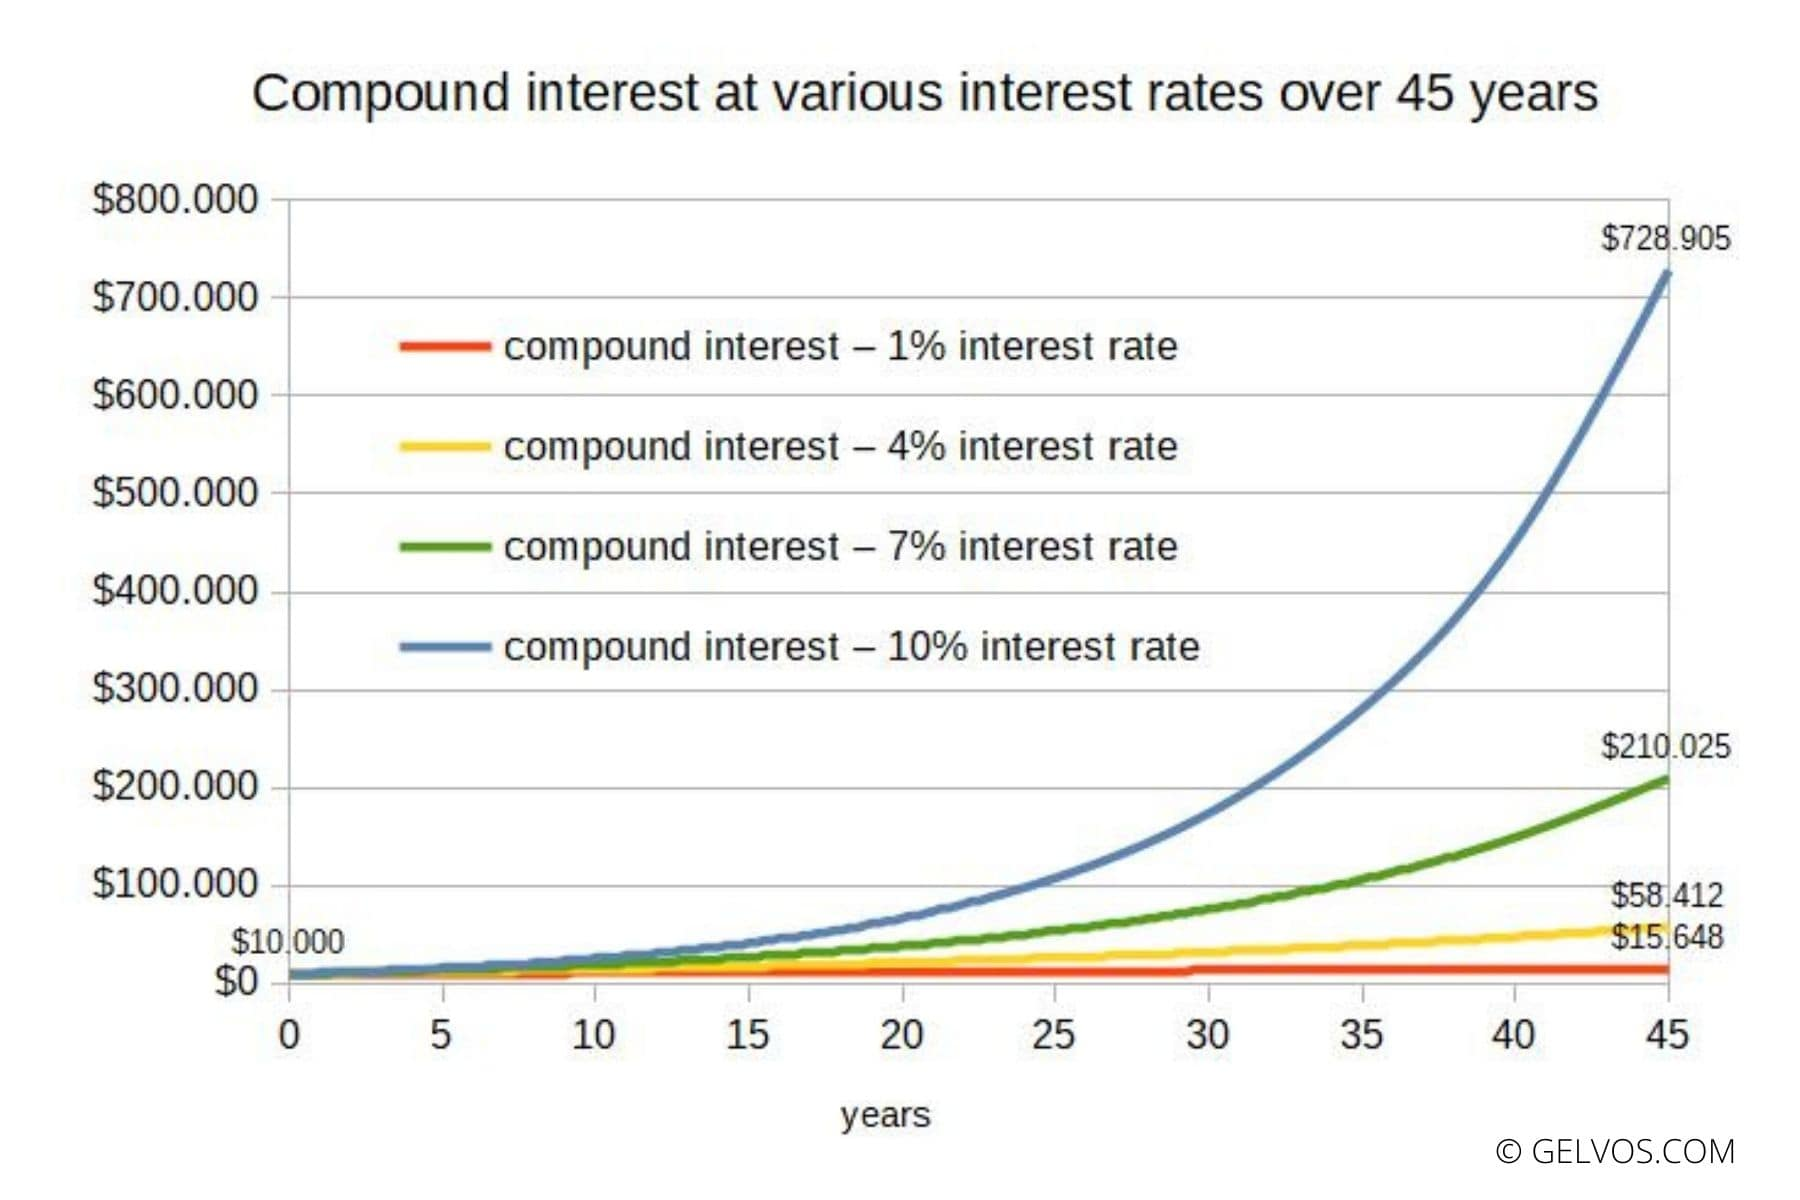 Compound interest at different interest rates over 45 years